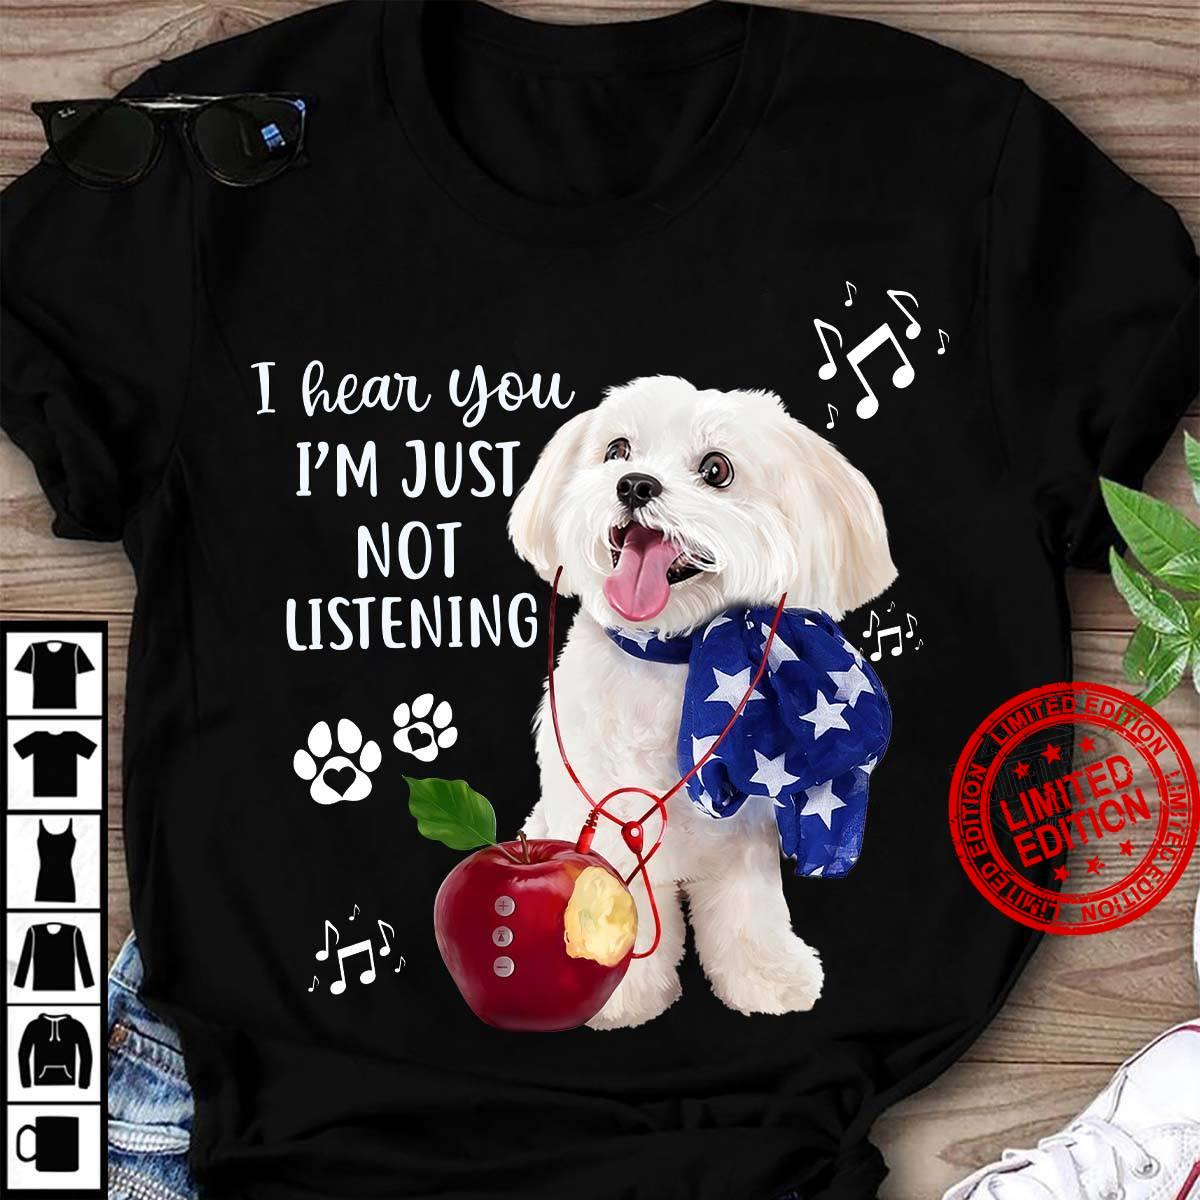 I Hear You I'm Just Not Listening Shirt